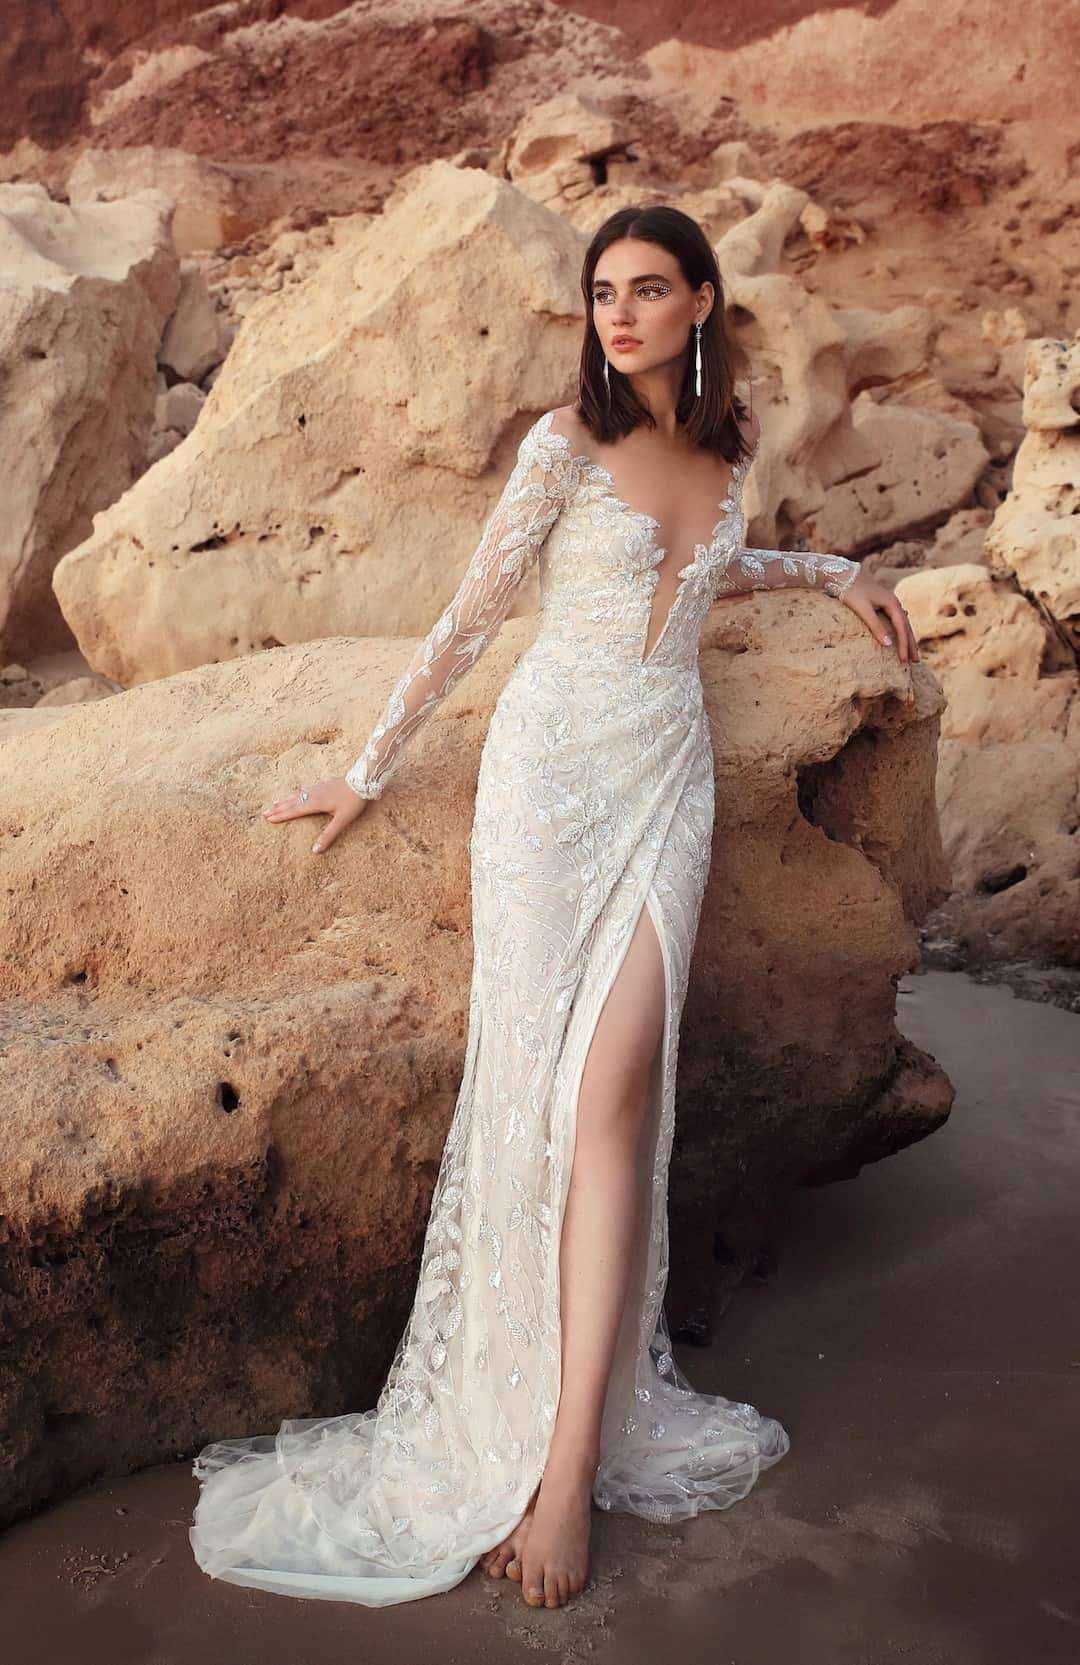 Luxury wedding dresses - G-410